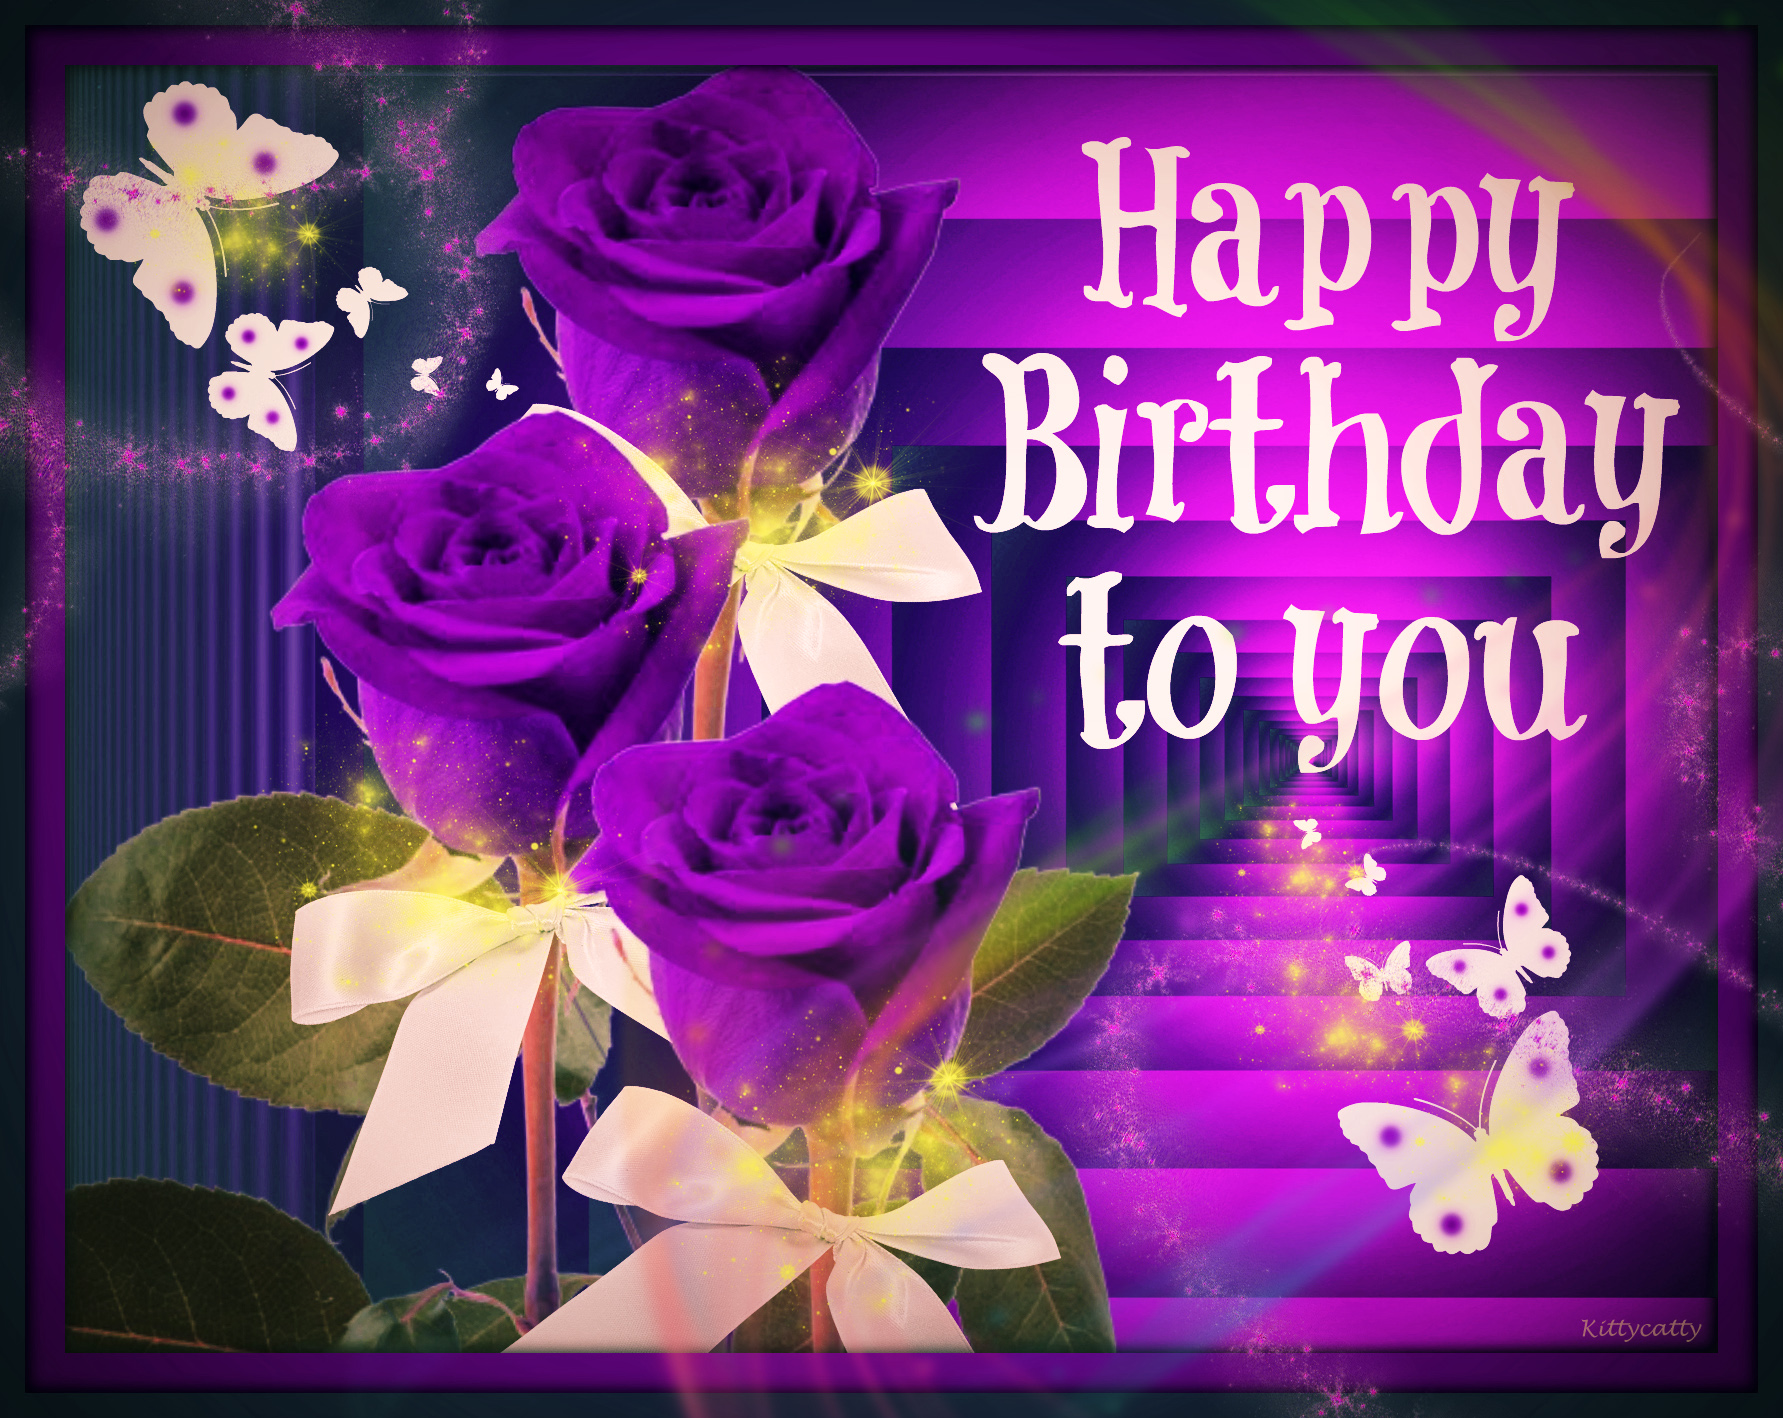 Marvelous Happy Birthday Card Happy Birthday Beautiful Card 180616 Hd Personalised Birthday Cards Paralily Jamesorg